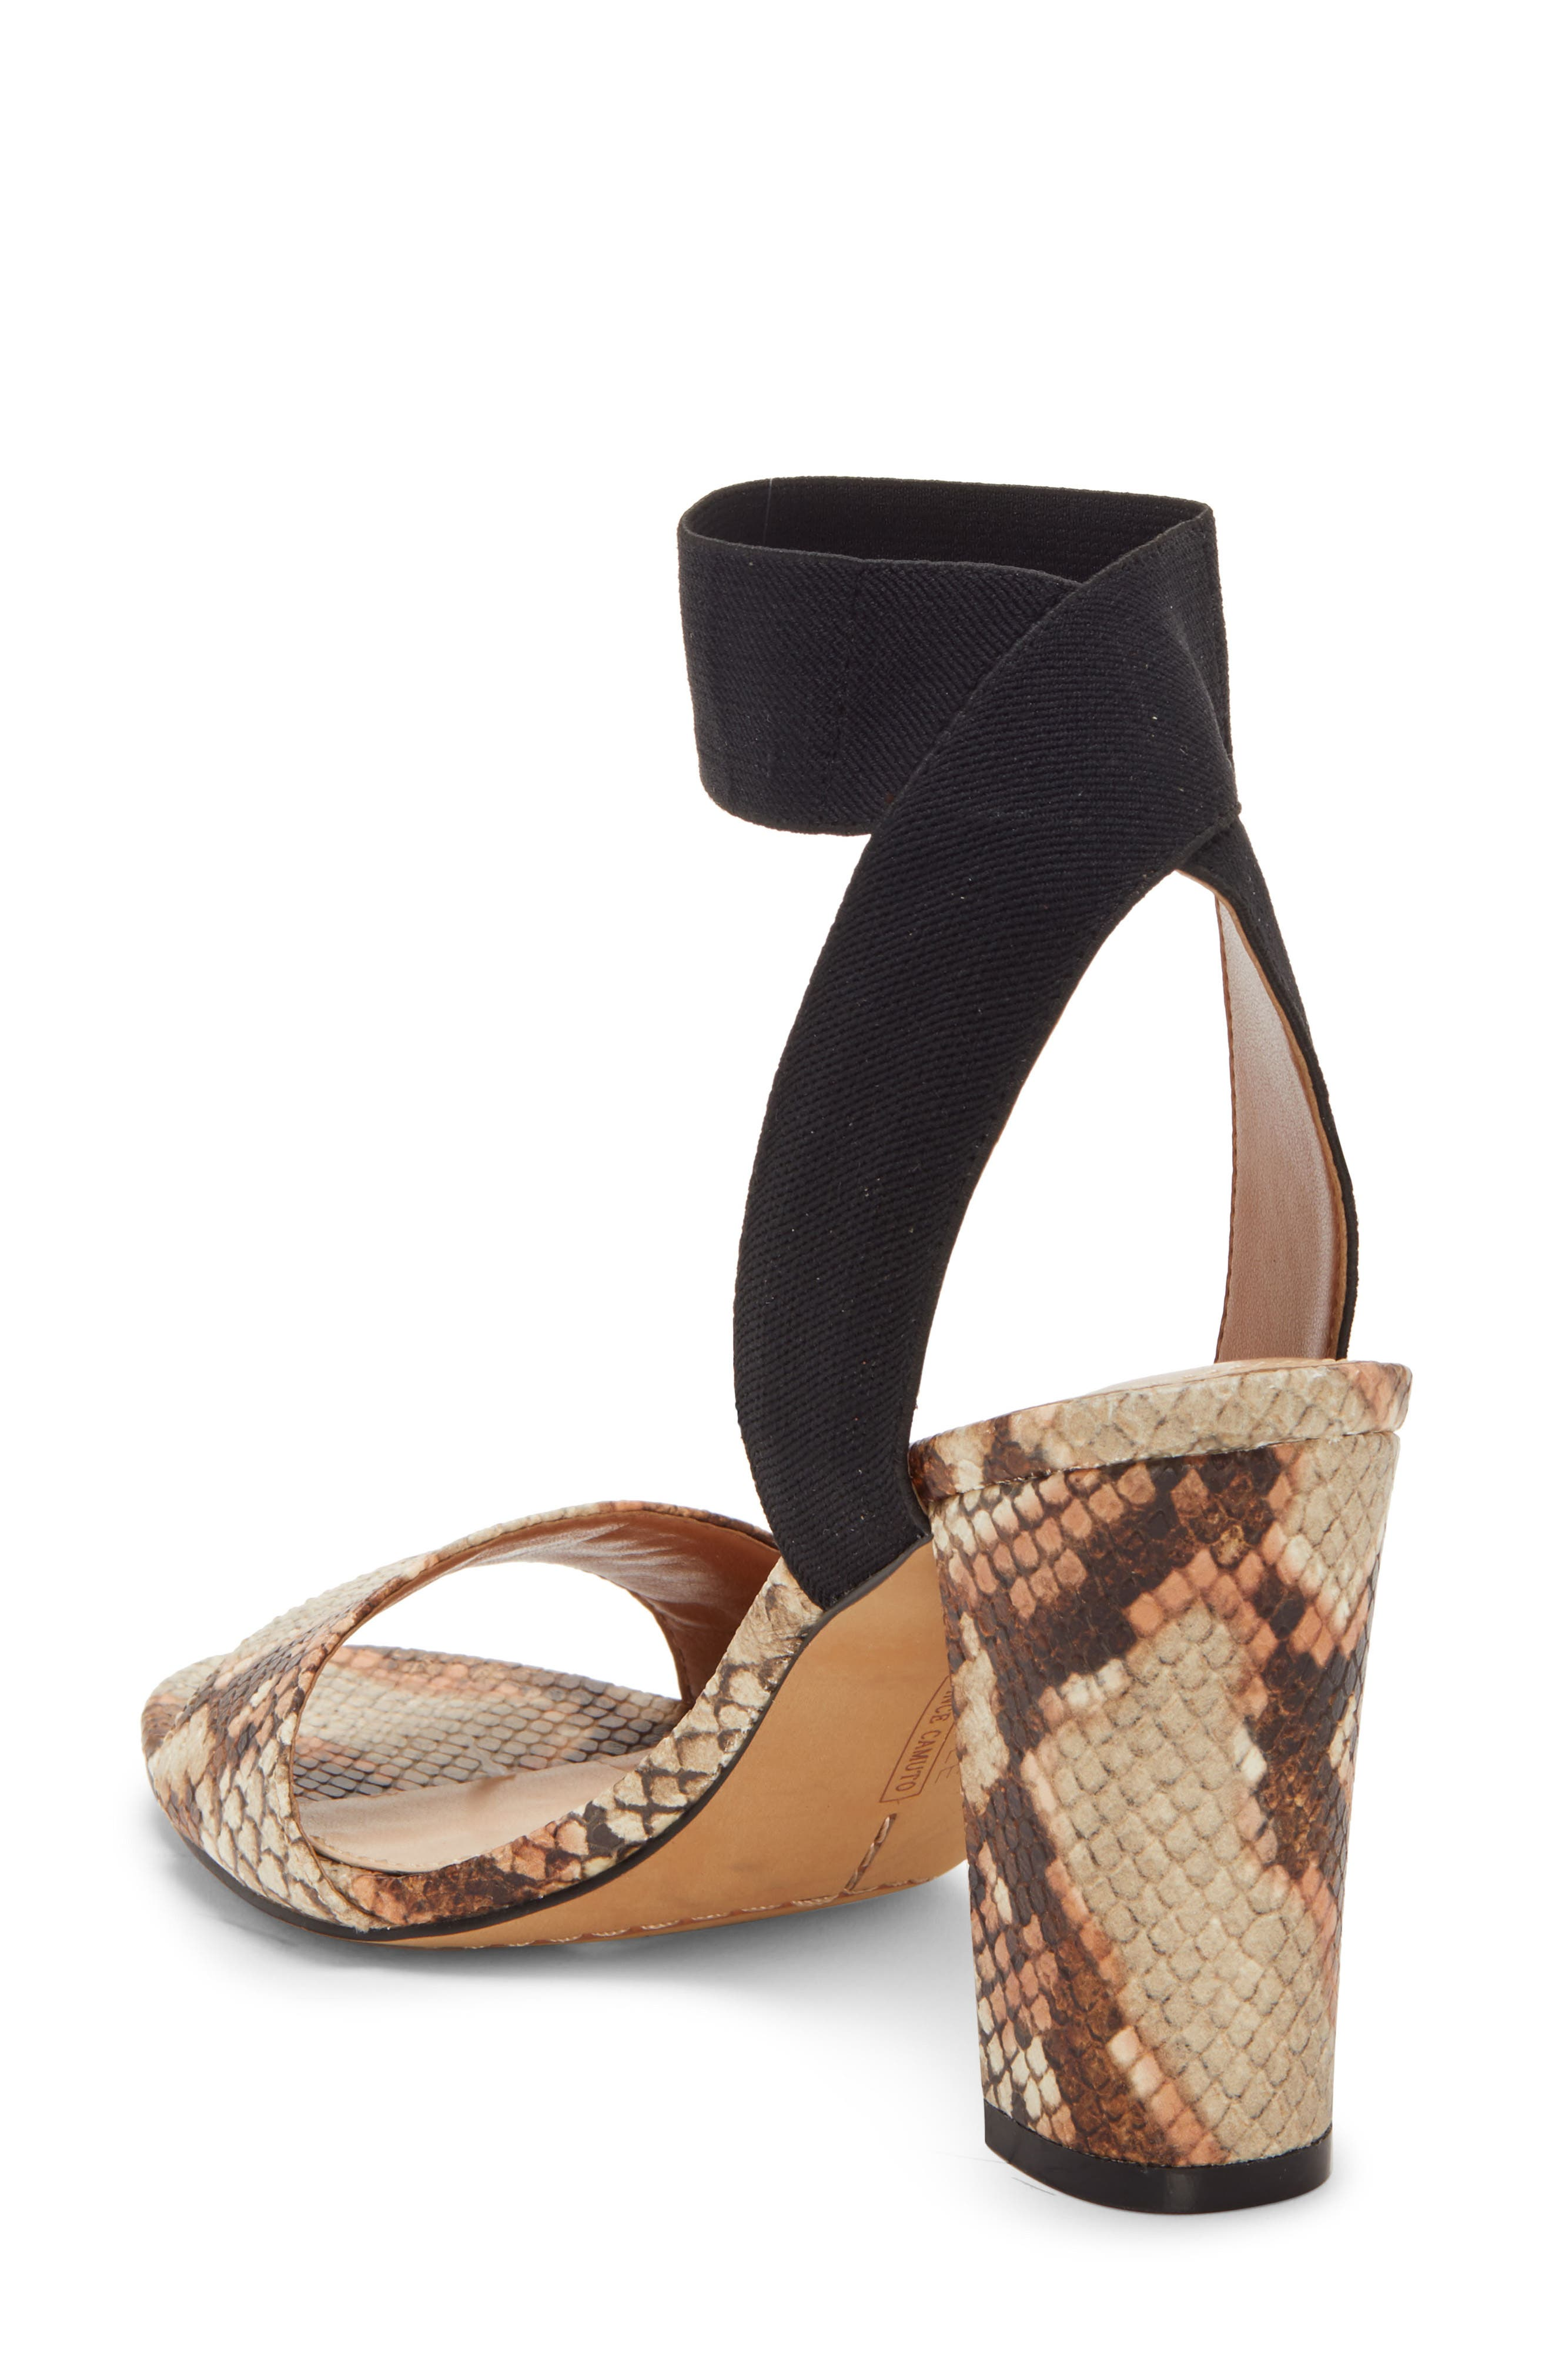 Vince Camuto Slippers Citriana Sandal